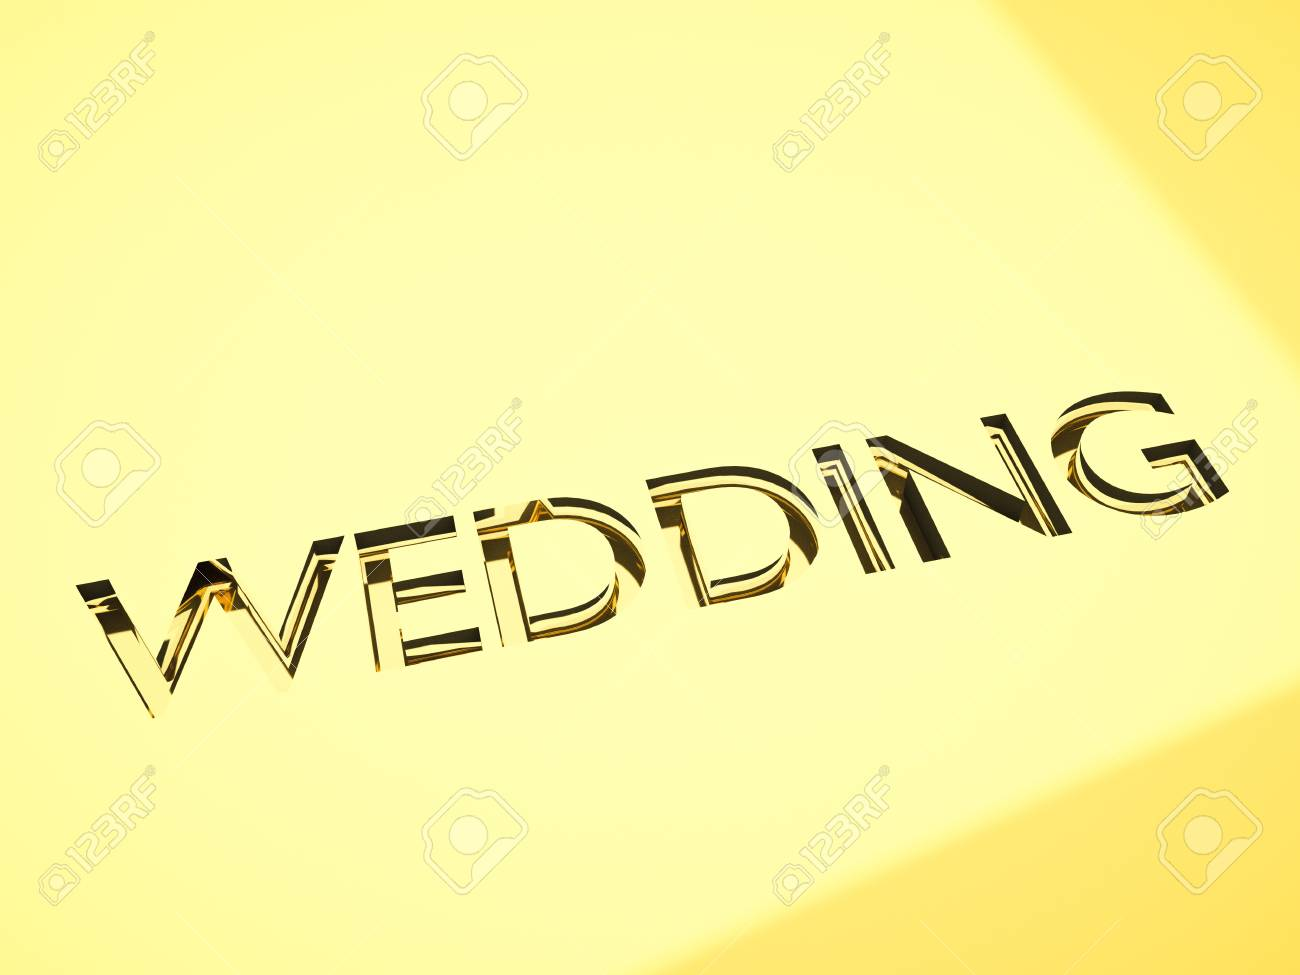 wedding message in engraving, for celebrations concepts or cards greetings. Stock Photo - 17420629